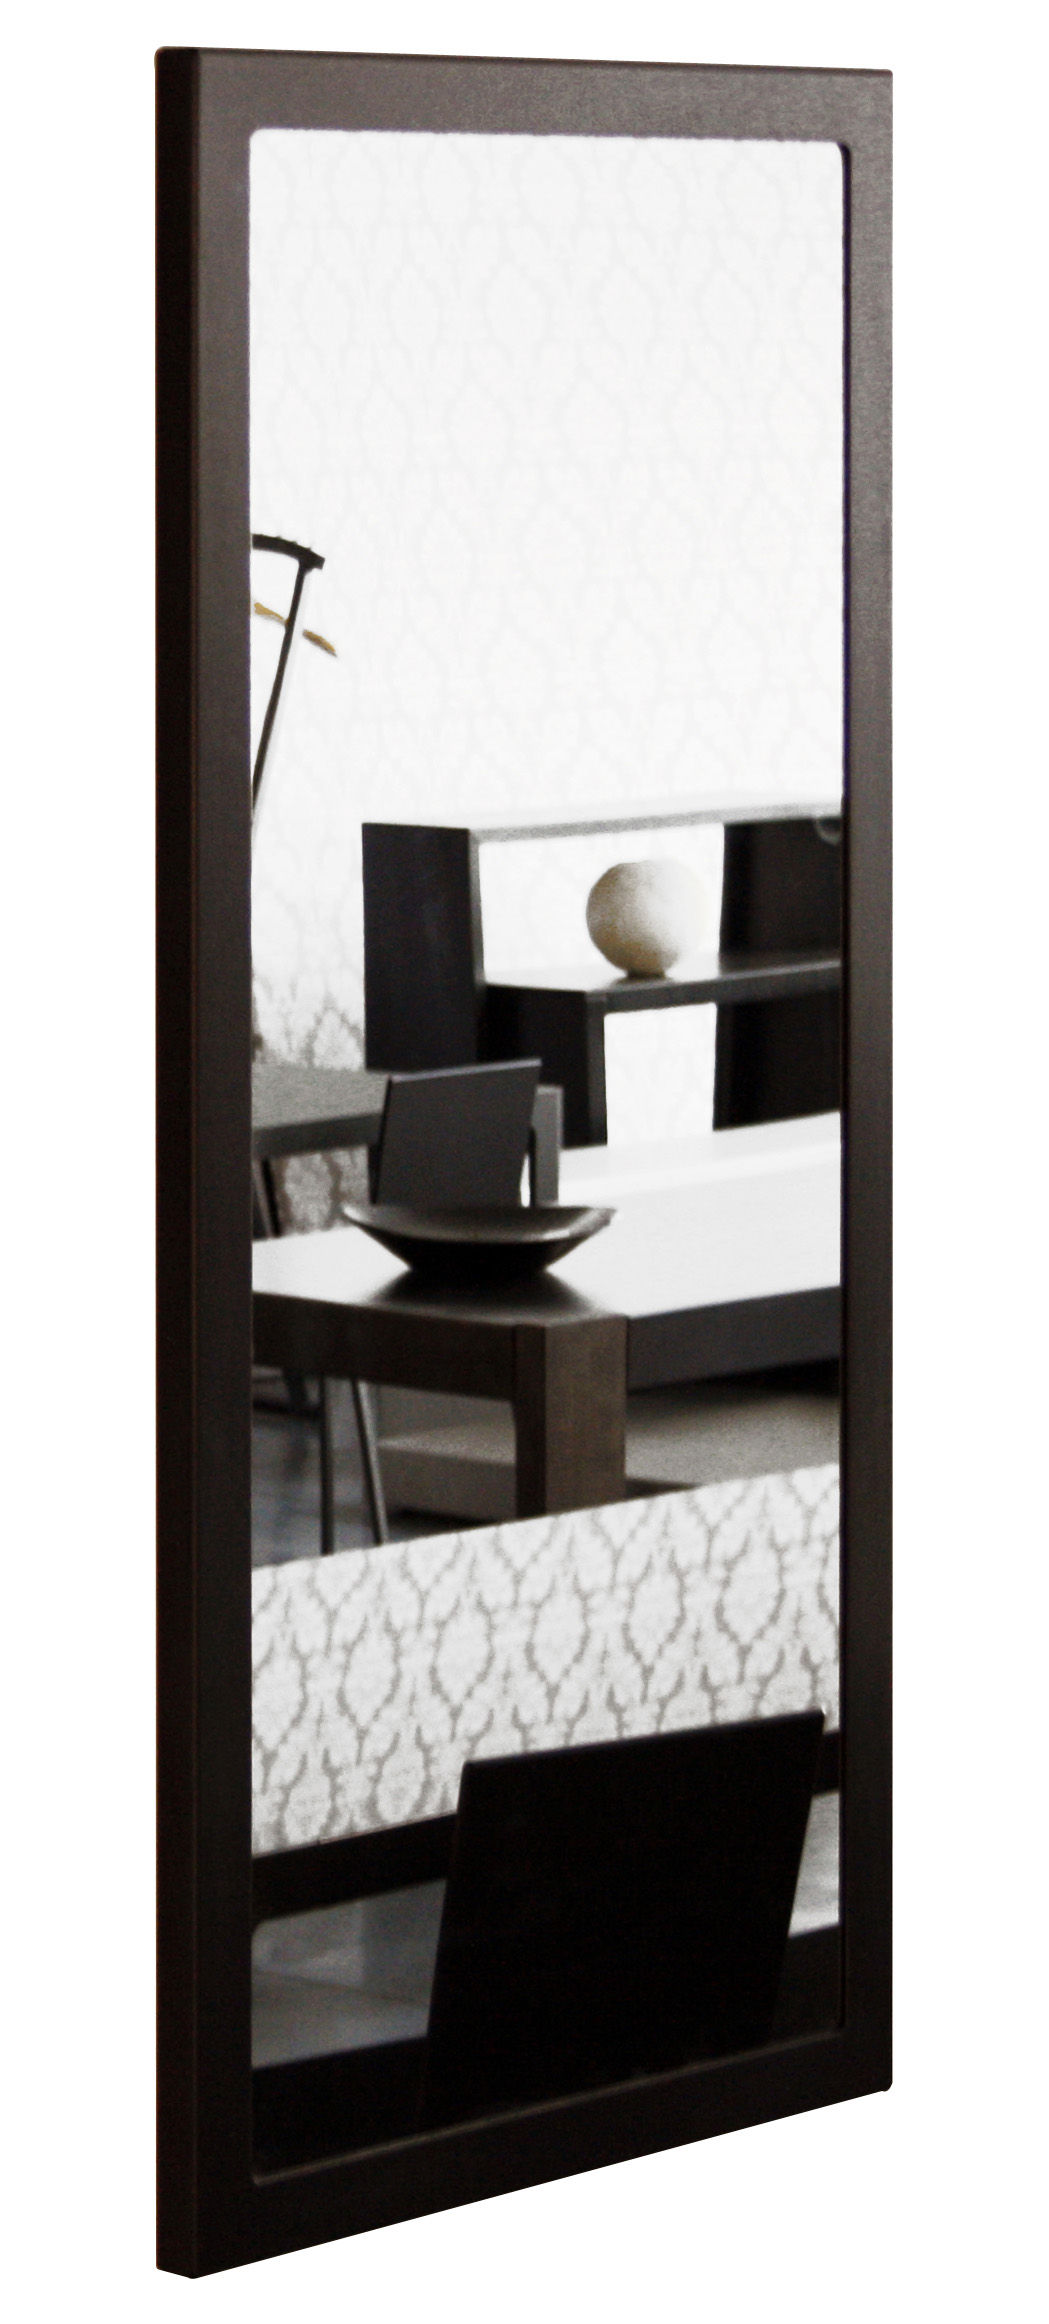 little frame wall mirror 60 x 120 cm black phosphatized. Black Bedroom Furniture Sets. Home Design Ideas